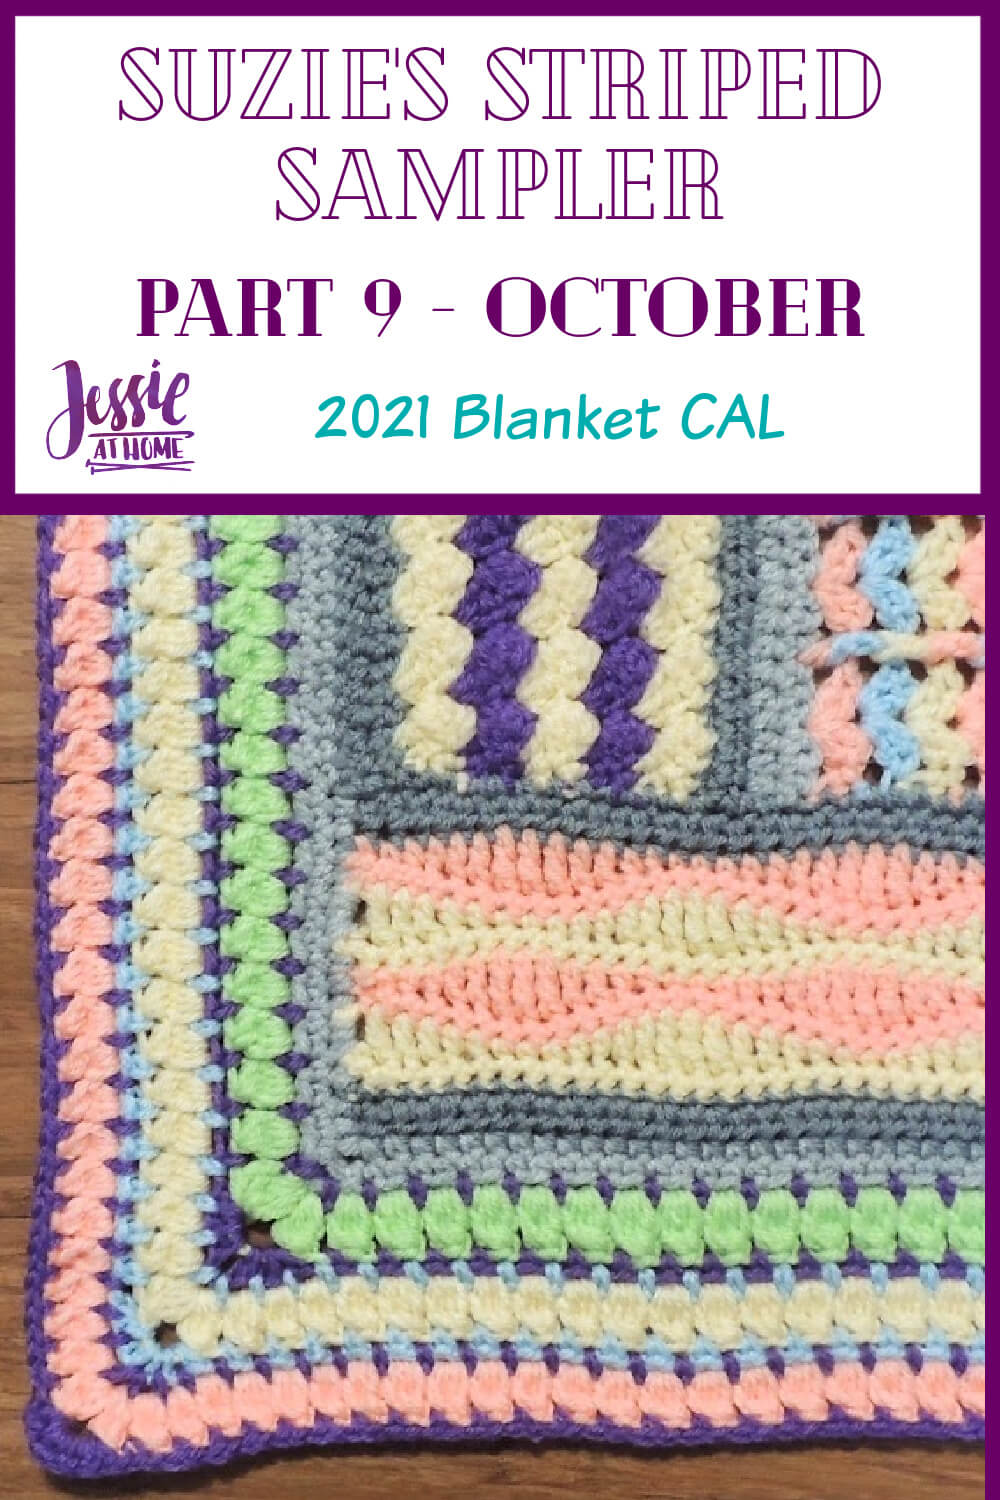 """A white vertical rectangle with purple boarder. On the top third is text """"Suzie's Striped Sampler Part 9 - October"""", """"2021 Blanket CAL"""", and """"Jessie At Home."""" The bottom two thirds is a photo of the corner of a striped sampler crochet blanket with a cluster stitch border, all in light rainbow colors."""